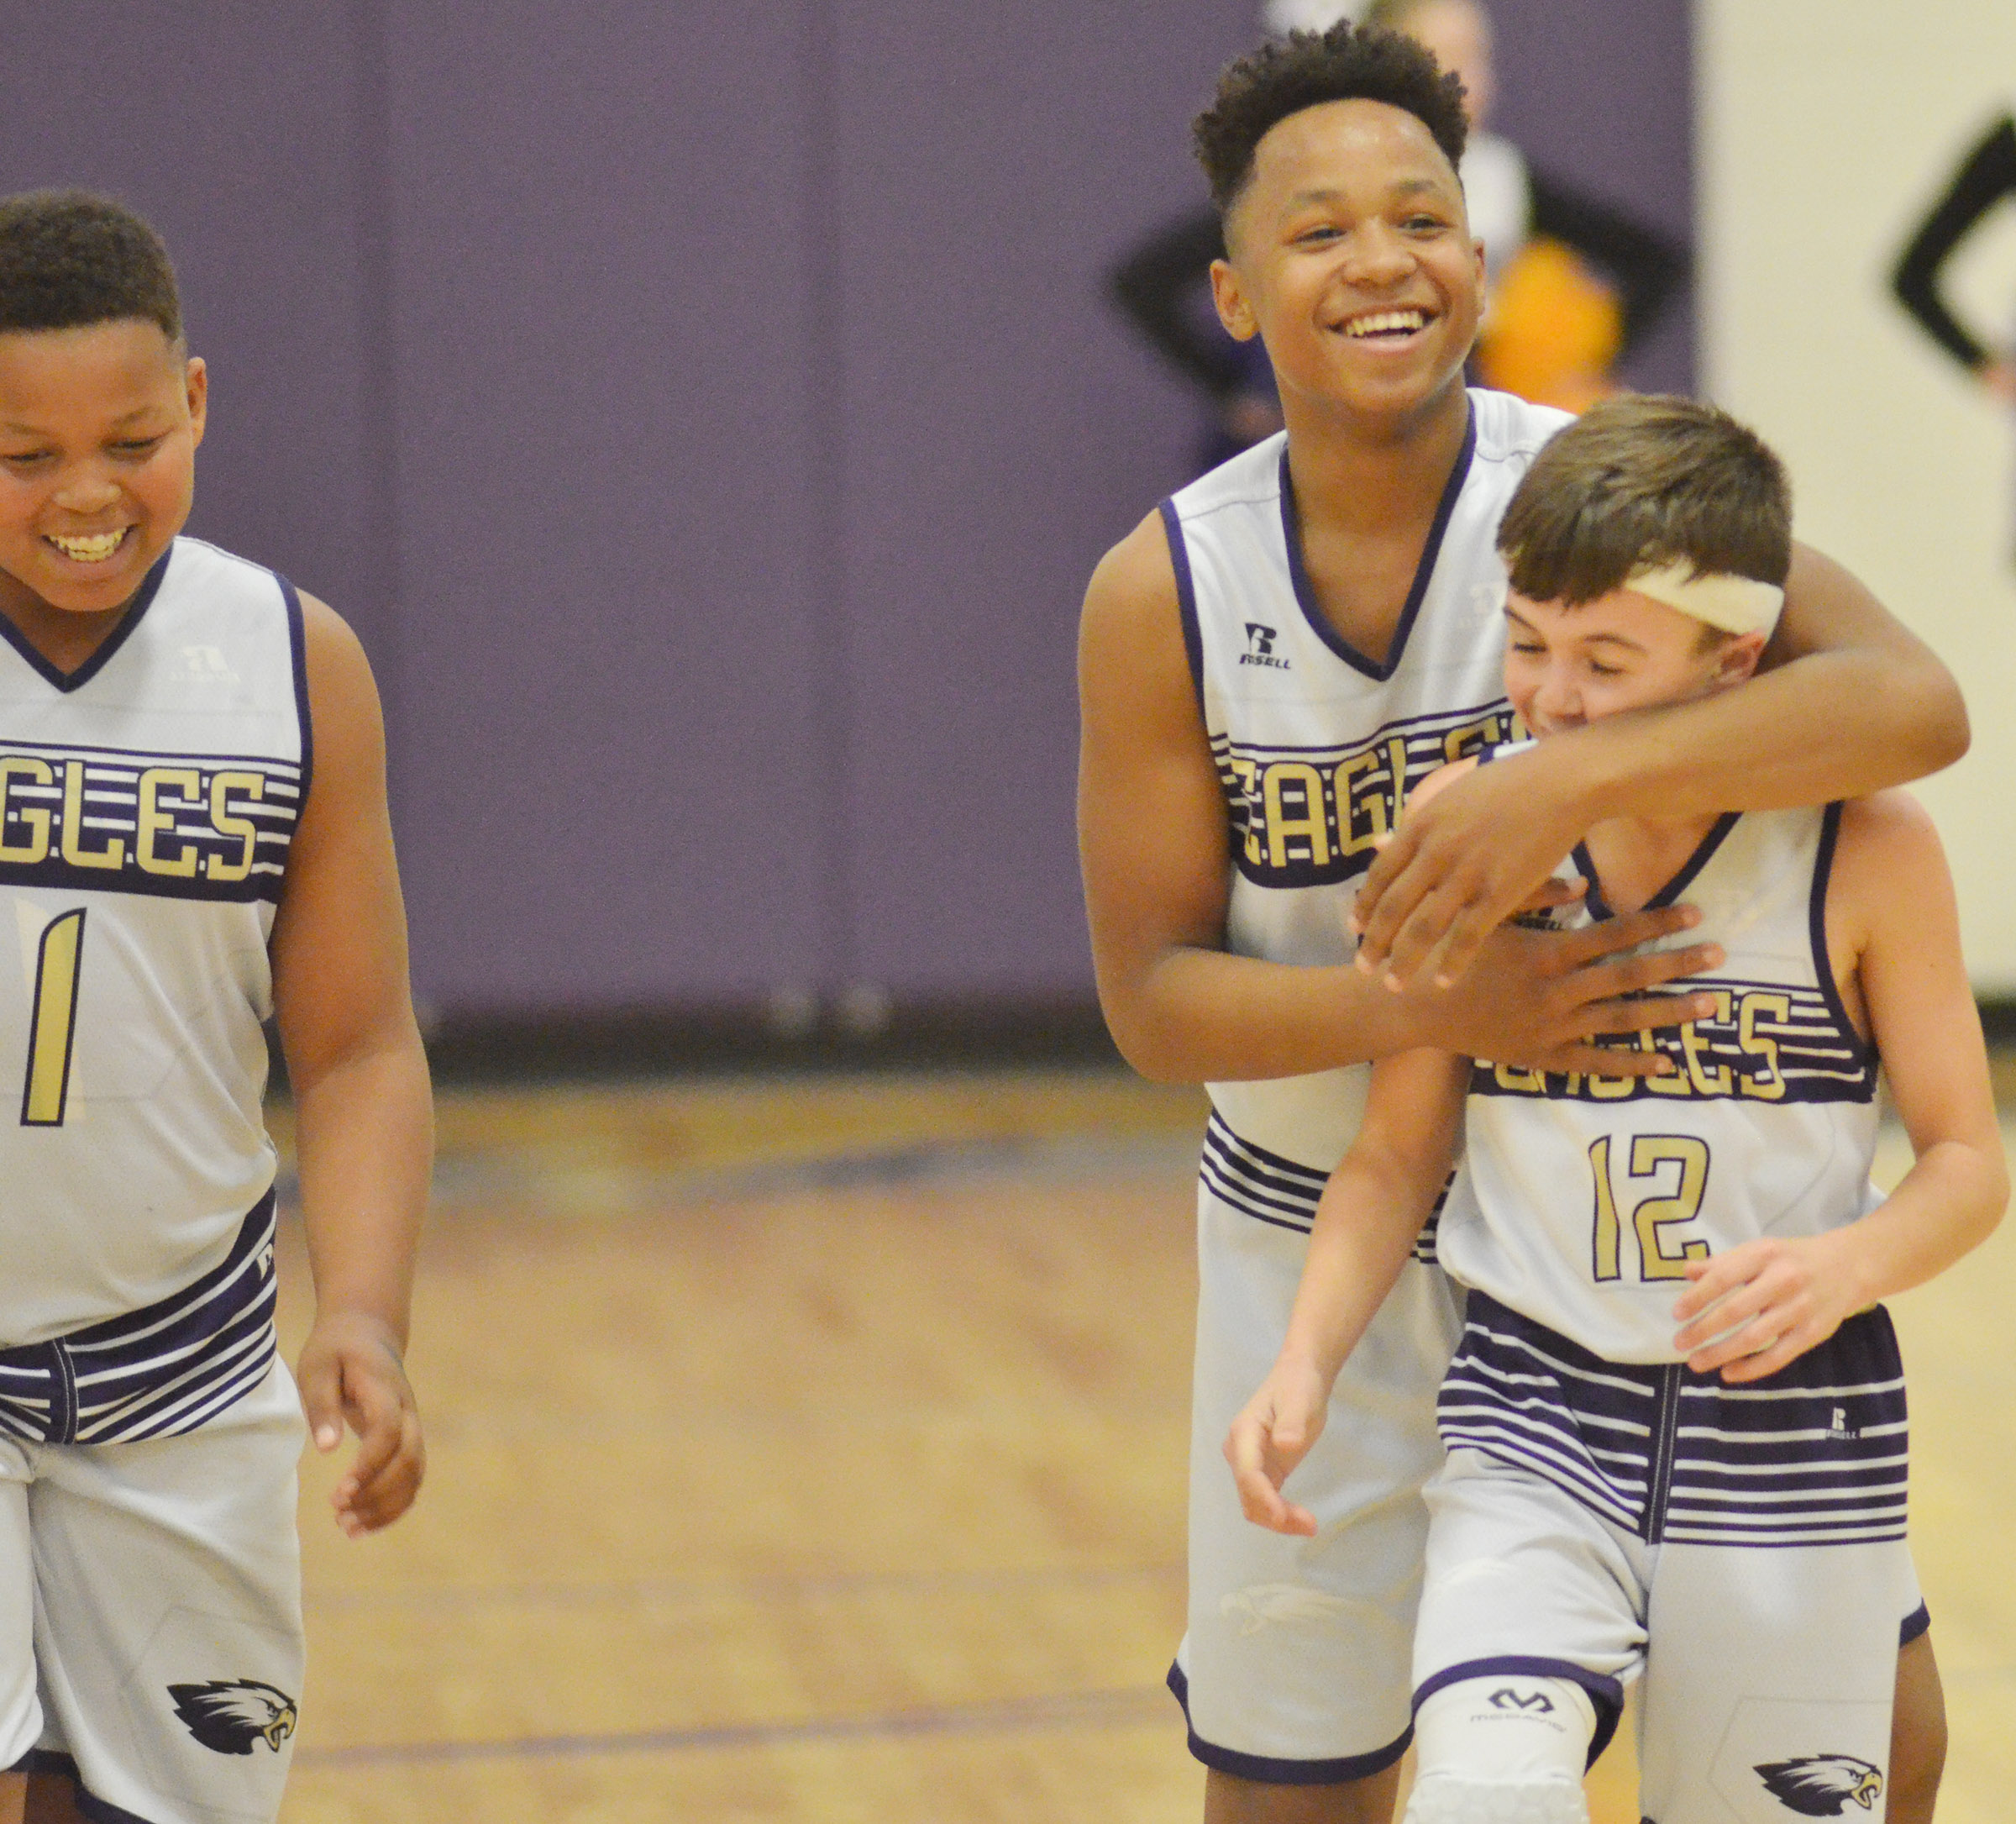 CMS seventh-graders, from left, Keondre Weathers, Deondre Weathers and Chase Hord celebrate after a play.